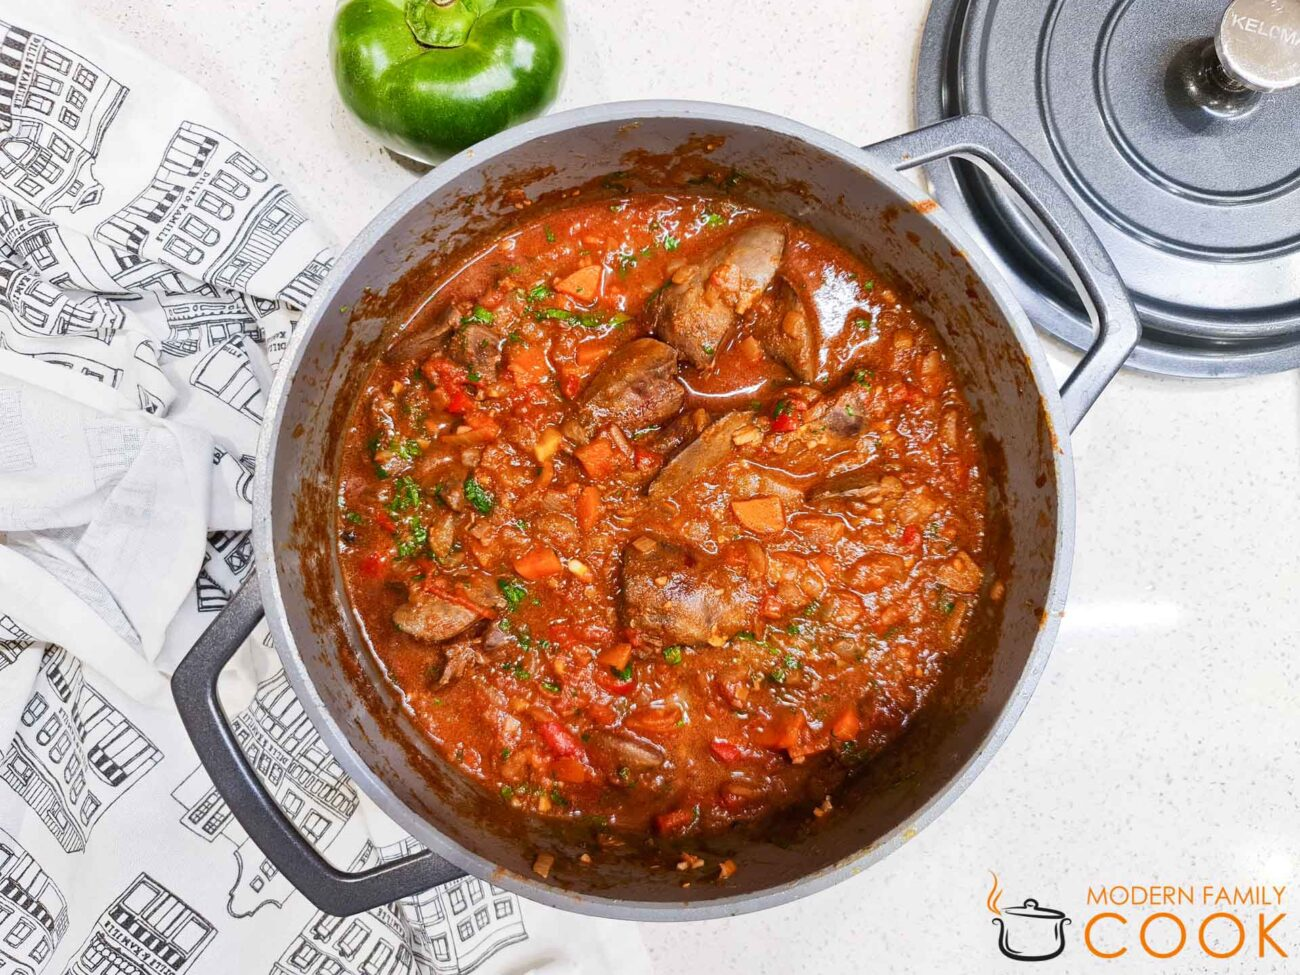 Liver with tomatoes and vegetables